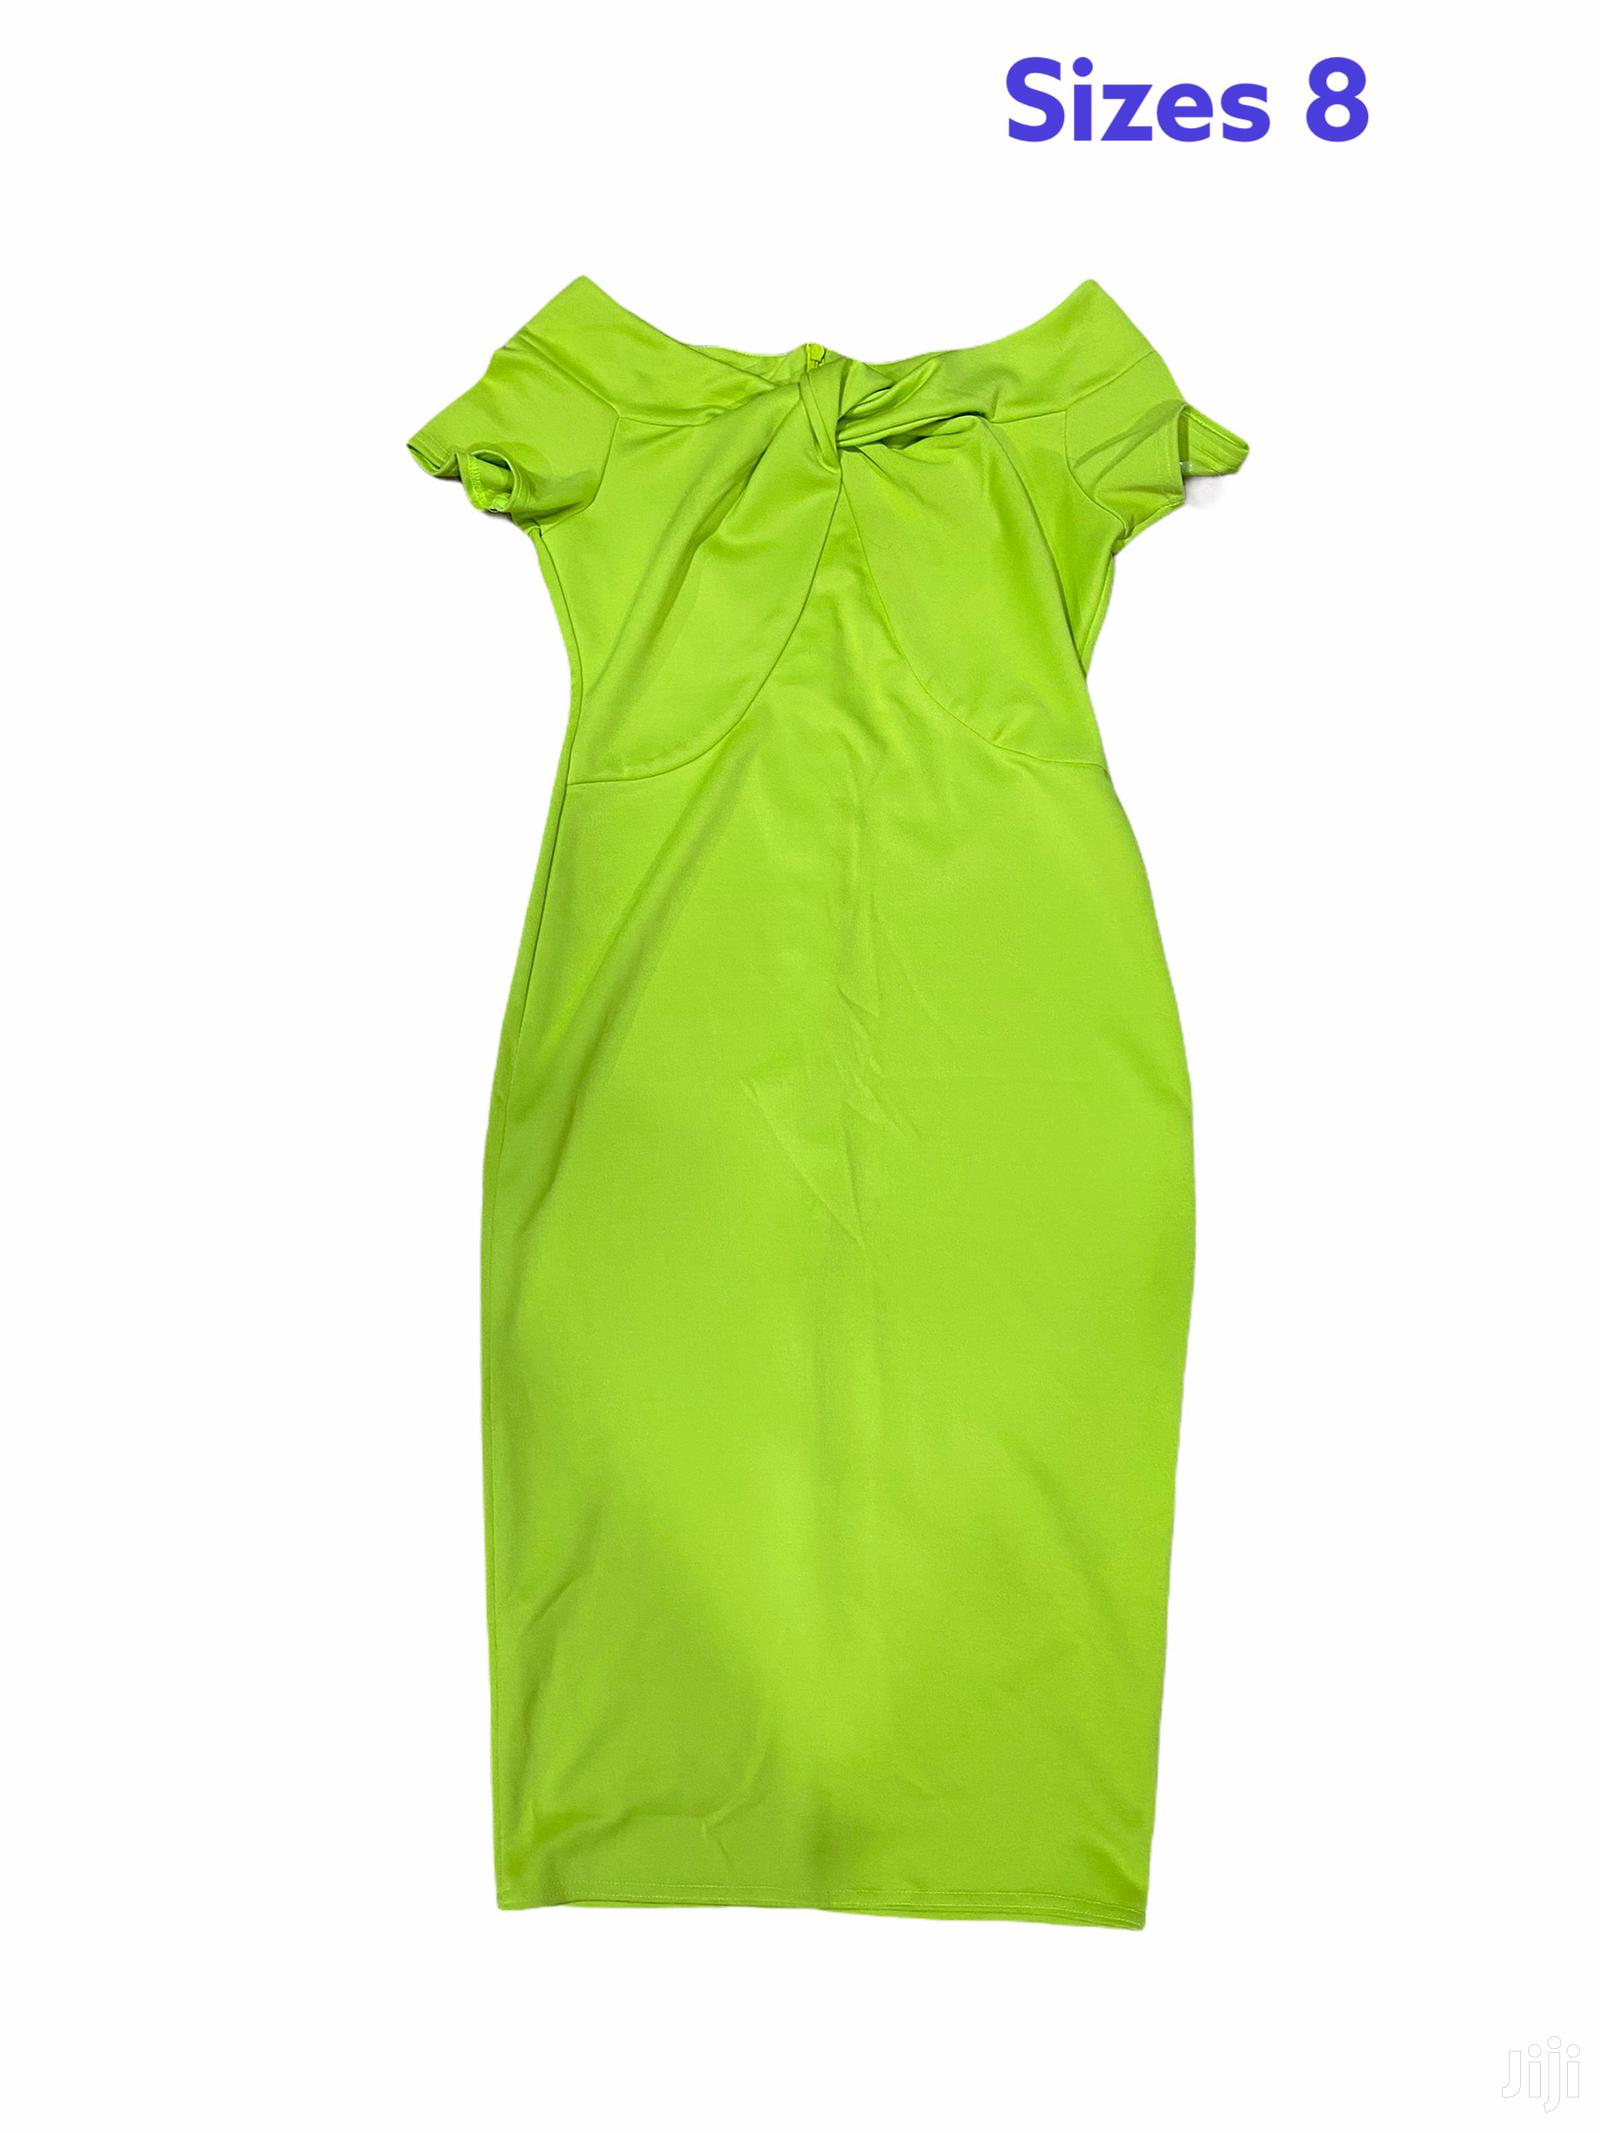 Ladies Dresses Available Sizes M and 8 | Clothing for sale in Nungua East, Greater Accra, Ghana